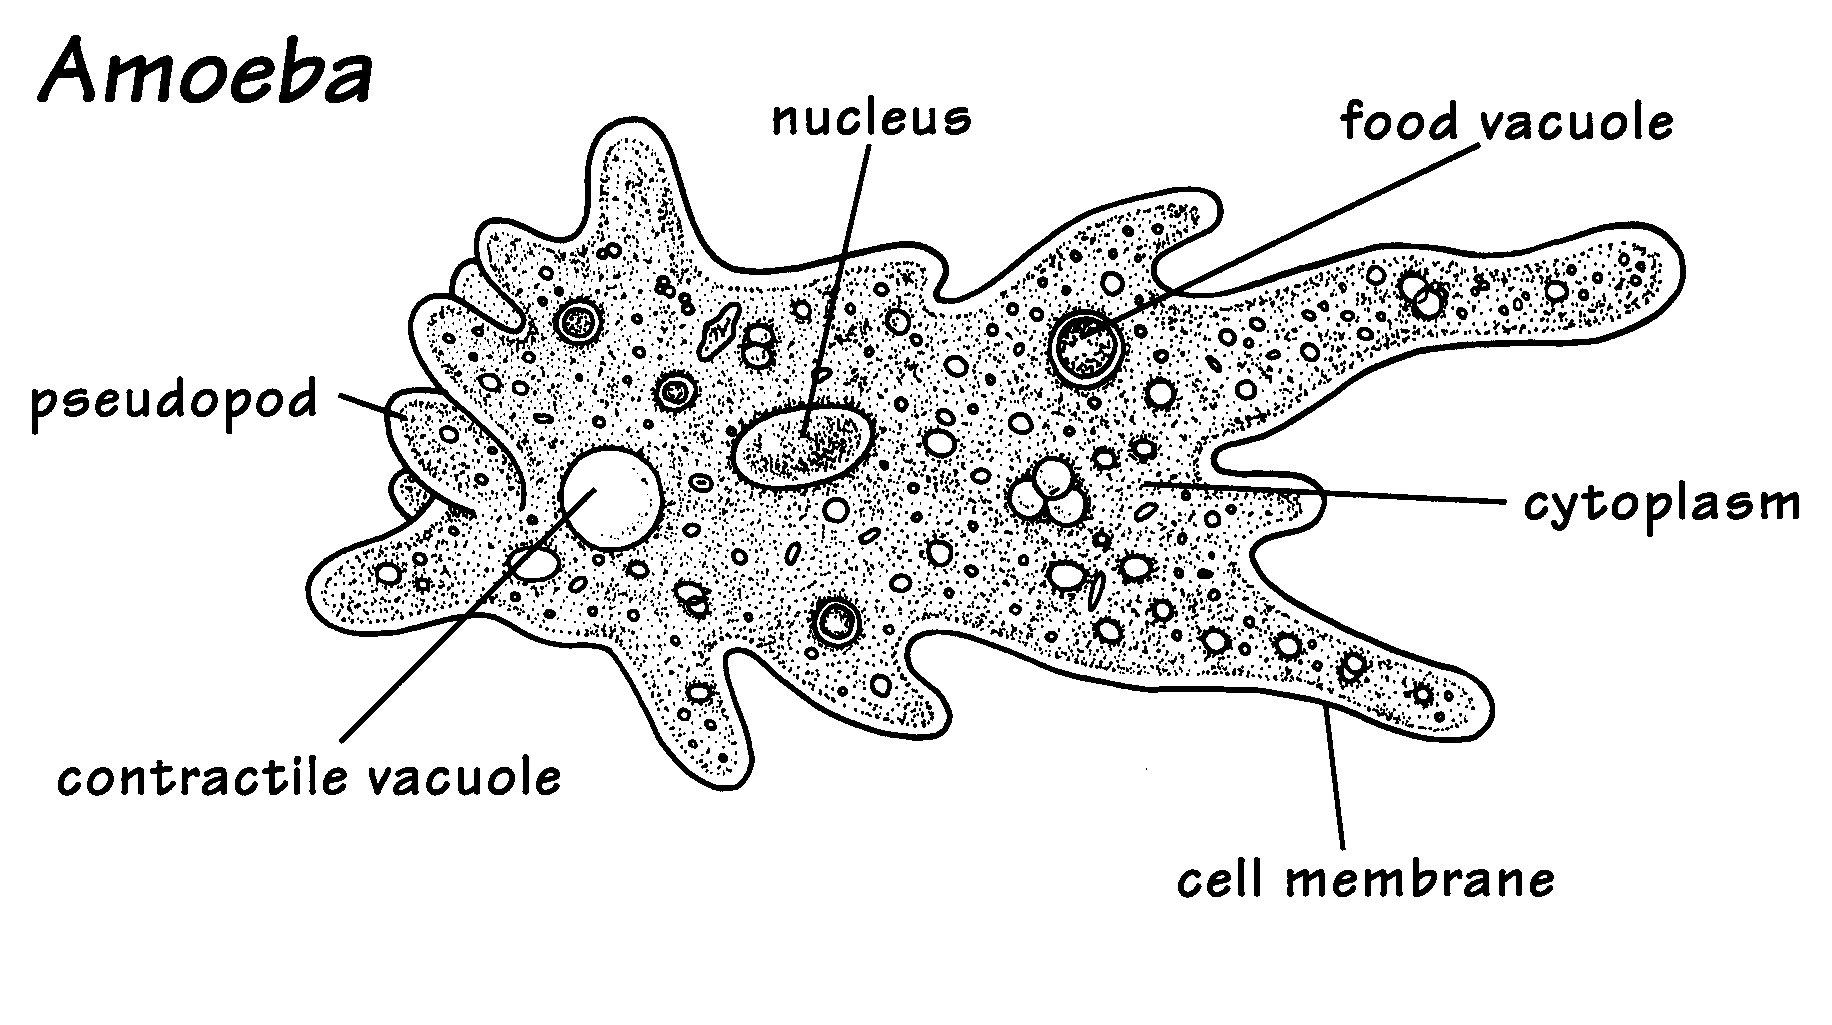 This is a picture of an amoeba, an amoeba is a unicellular.